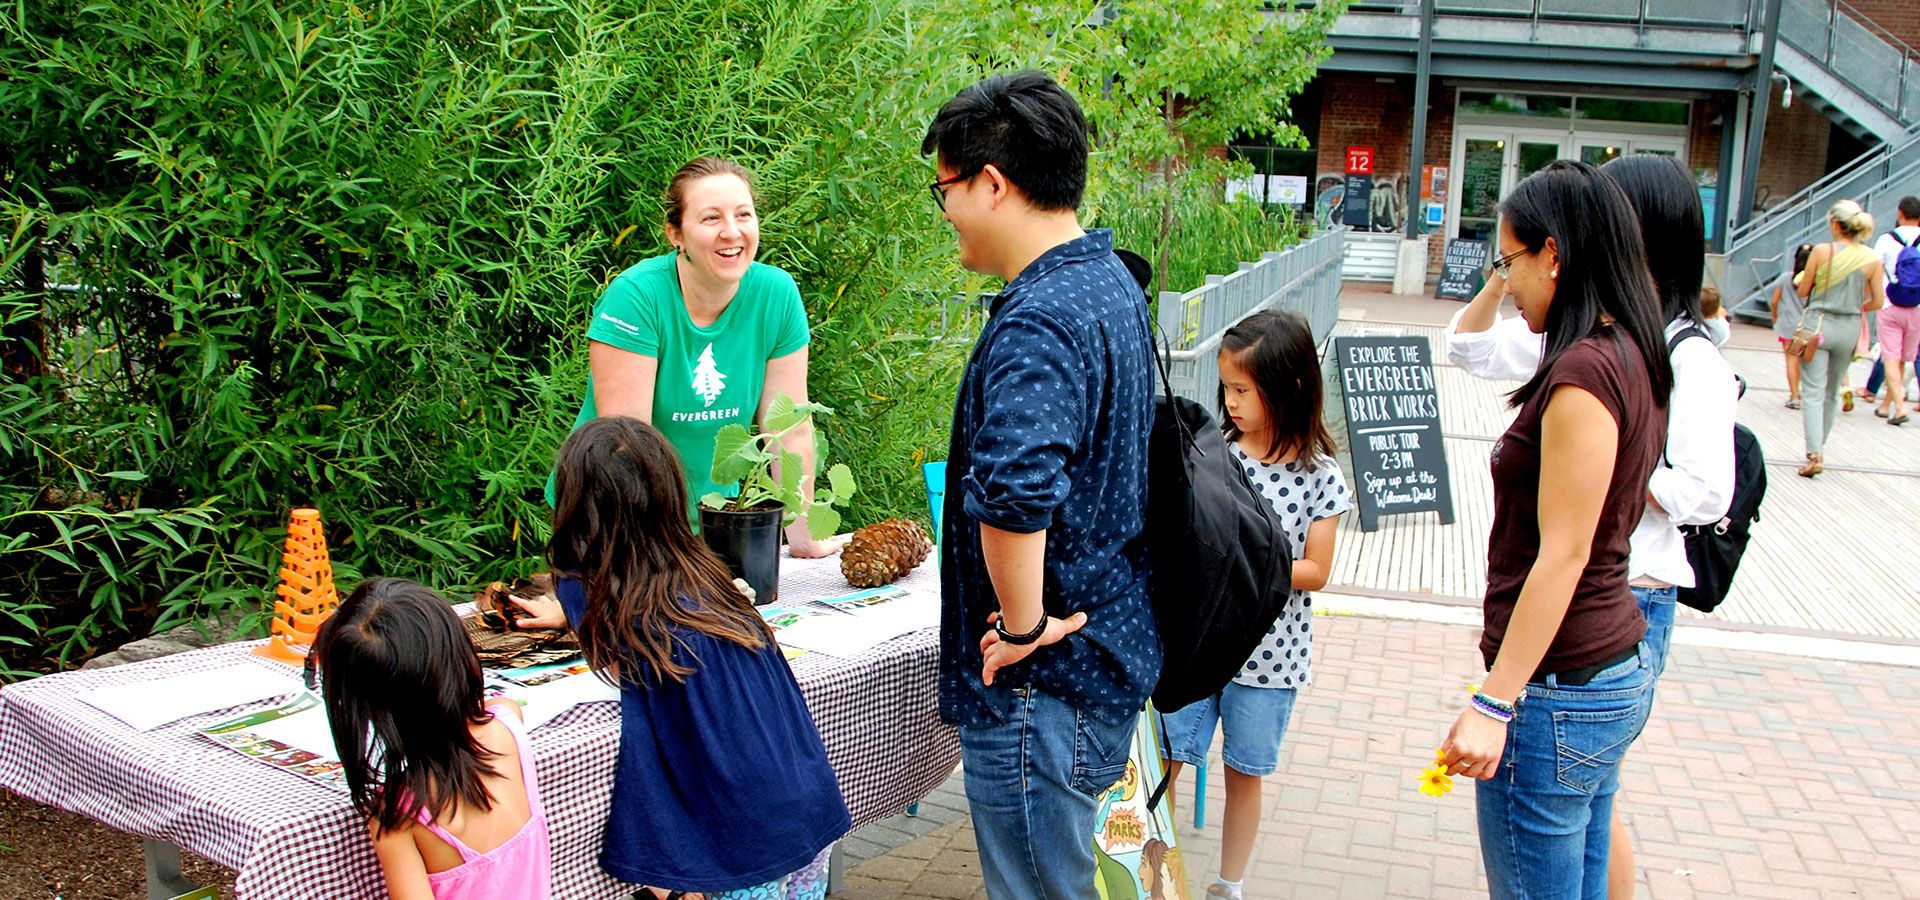 A volunteer speaking to some visitors at a display table.